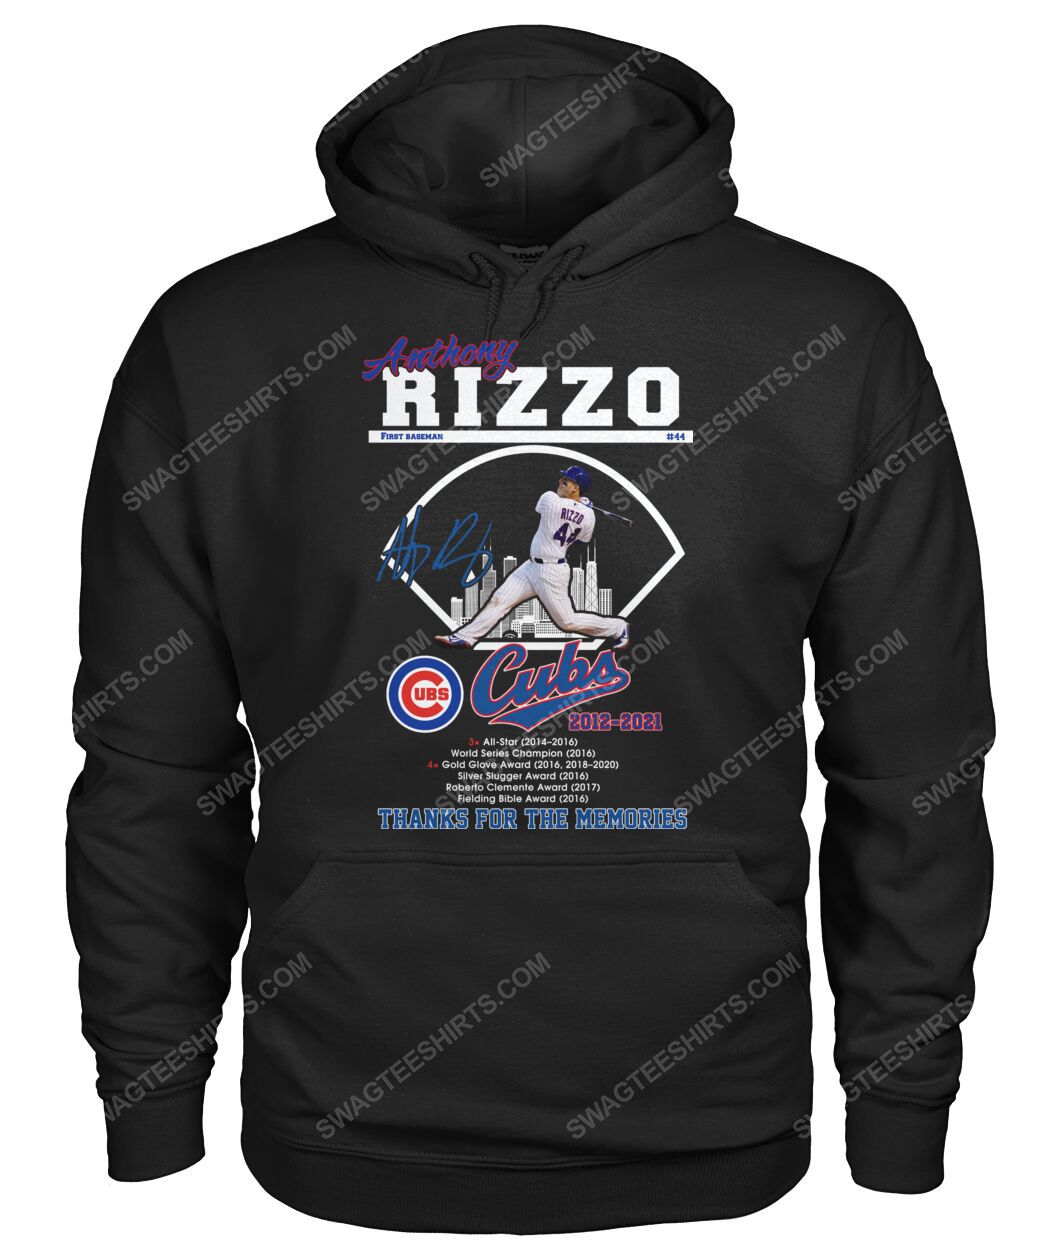 Anthony rizzo chicago cubs thanks for the memories hoodie 1